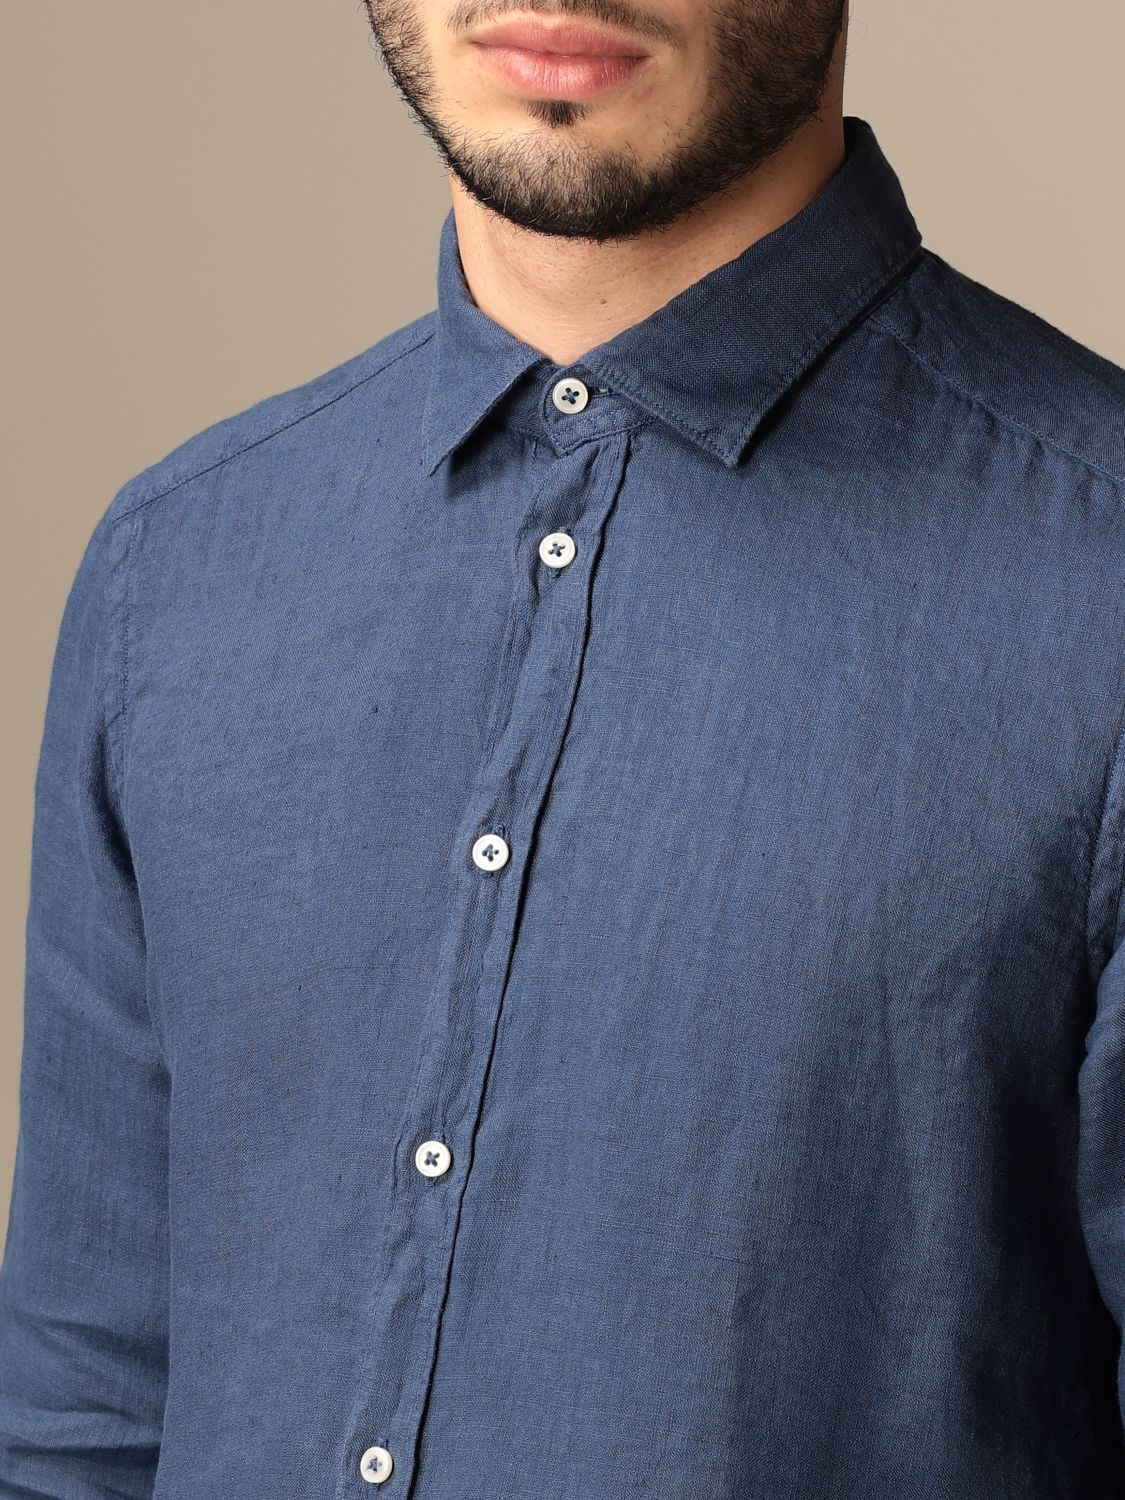 Chemise An American Tradition: Chemise homme Bd Baggies bleu marine 3